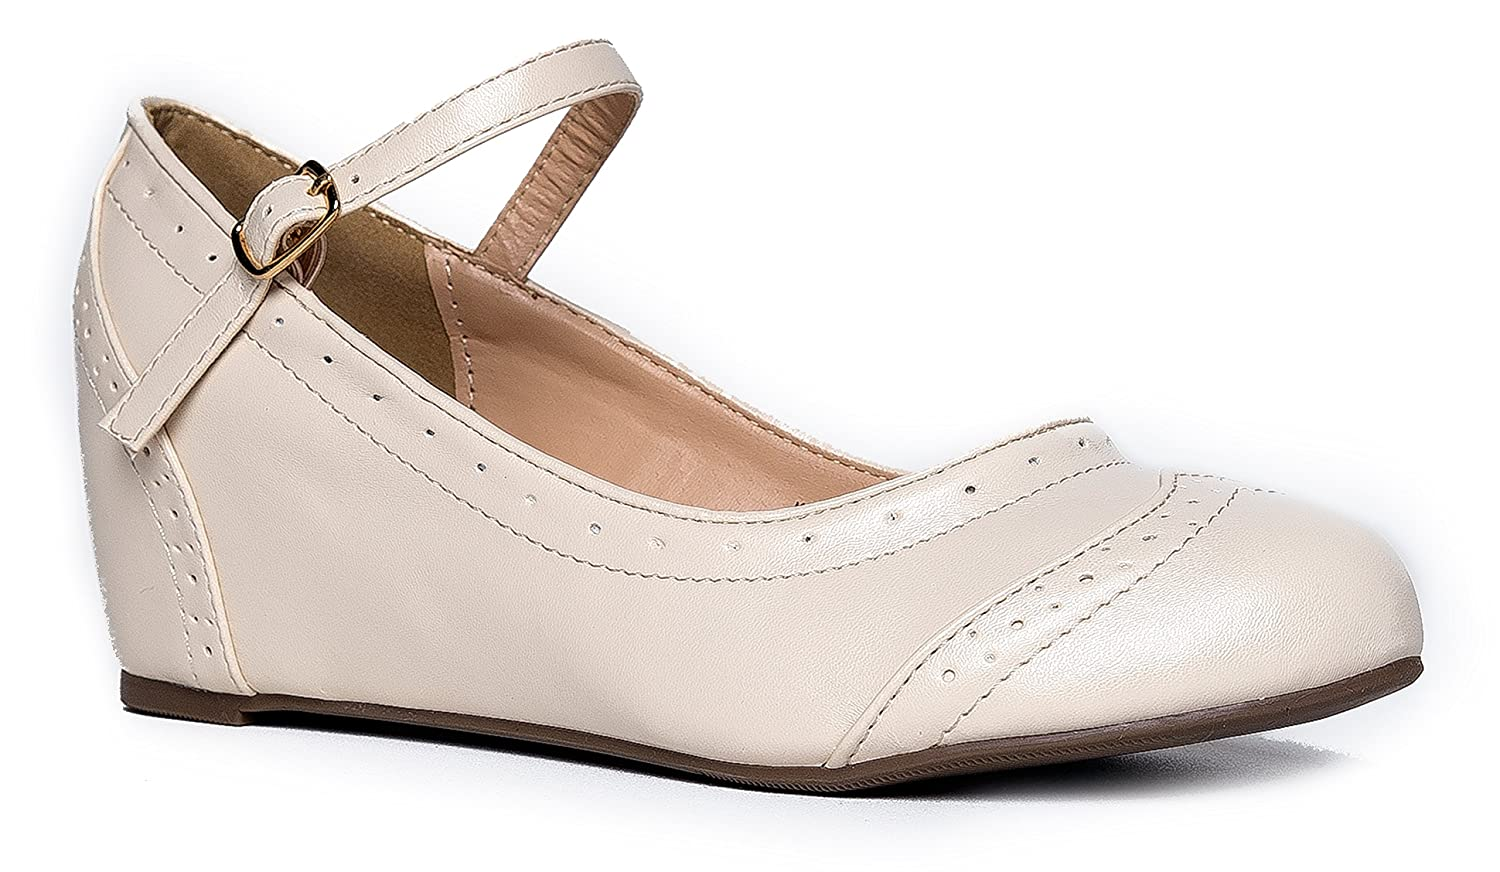 1940s Style Wedding Dresses and Accessories Ankle Strap Mary Jane Wedge - Low Round Toe Retro Shoe - Cute Vintage Oxford Heel - Minnie by J Adams $27.50 AT vintagedancer.com